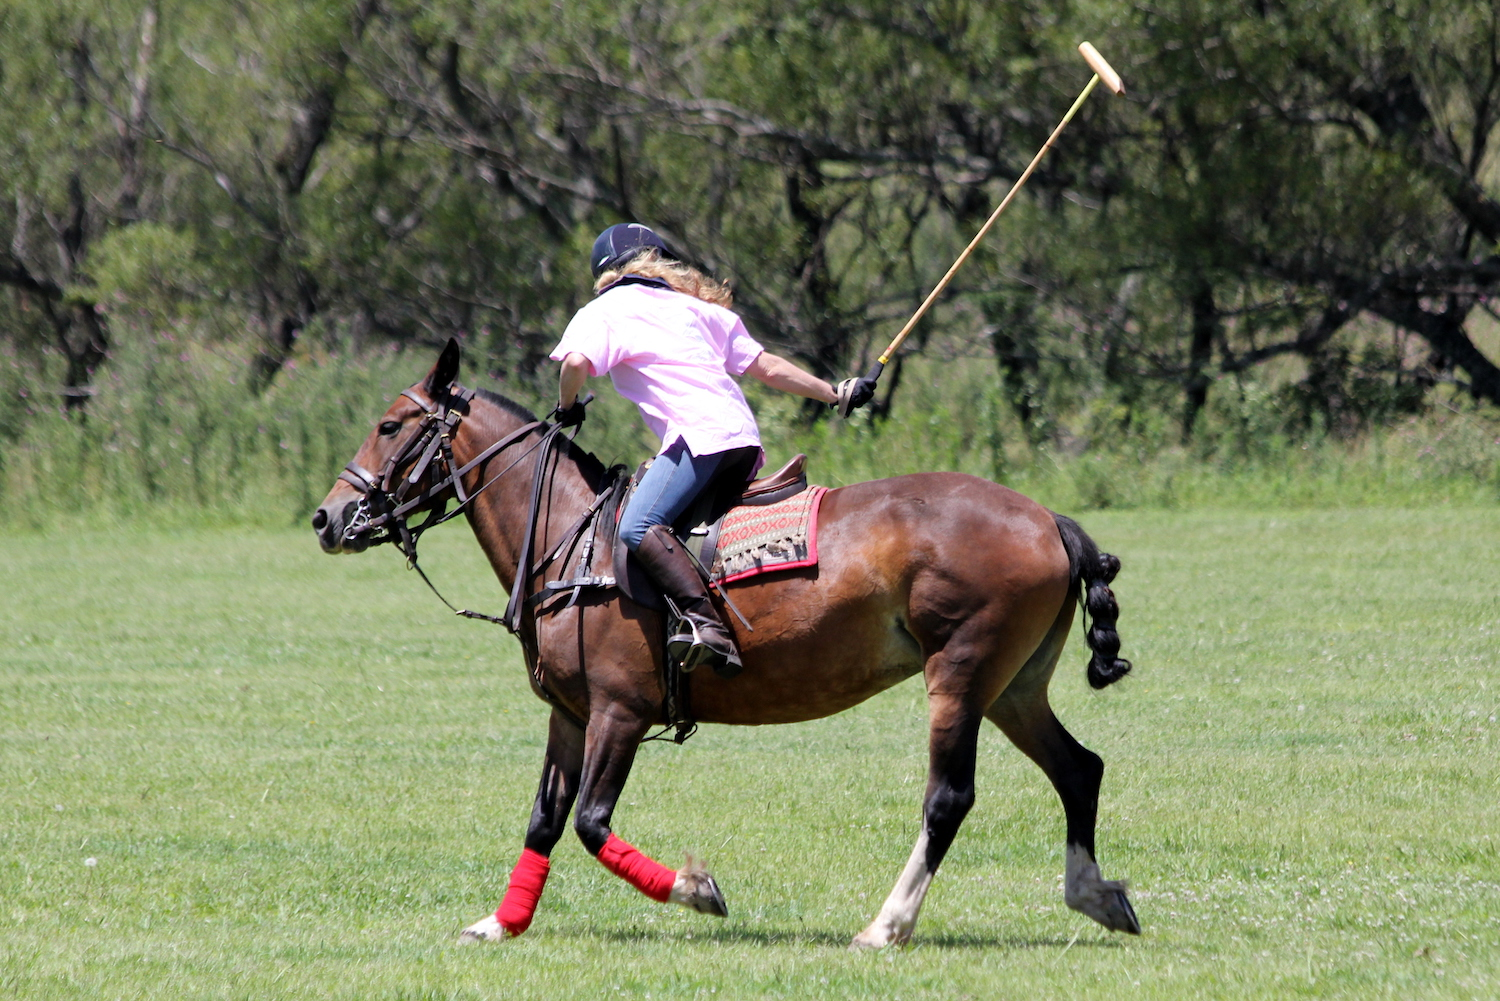 Polo Match at Estancia Los Potreros